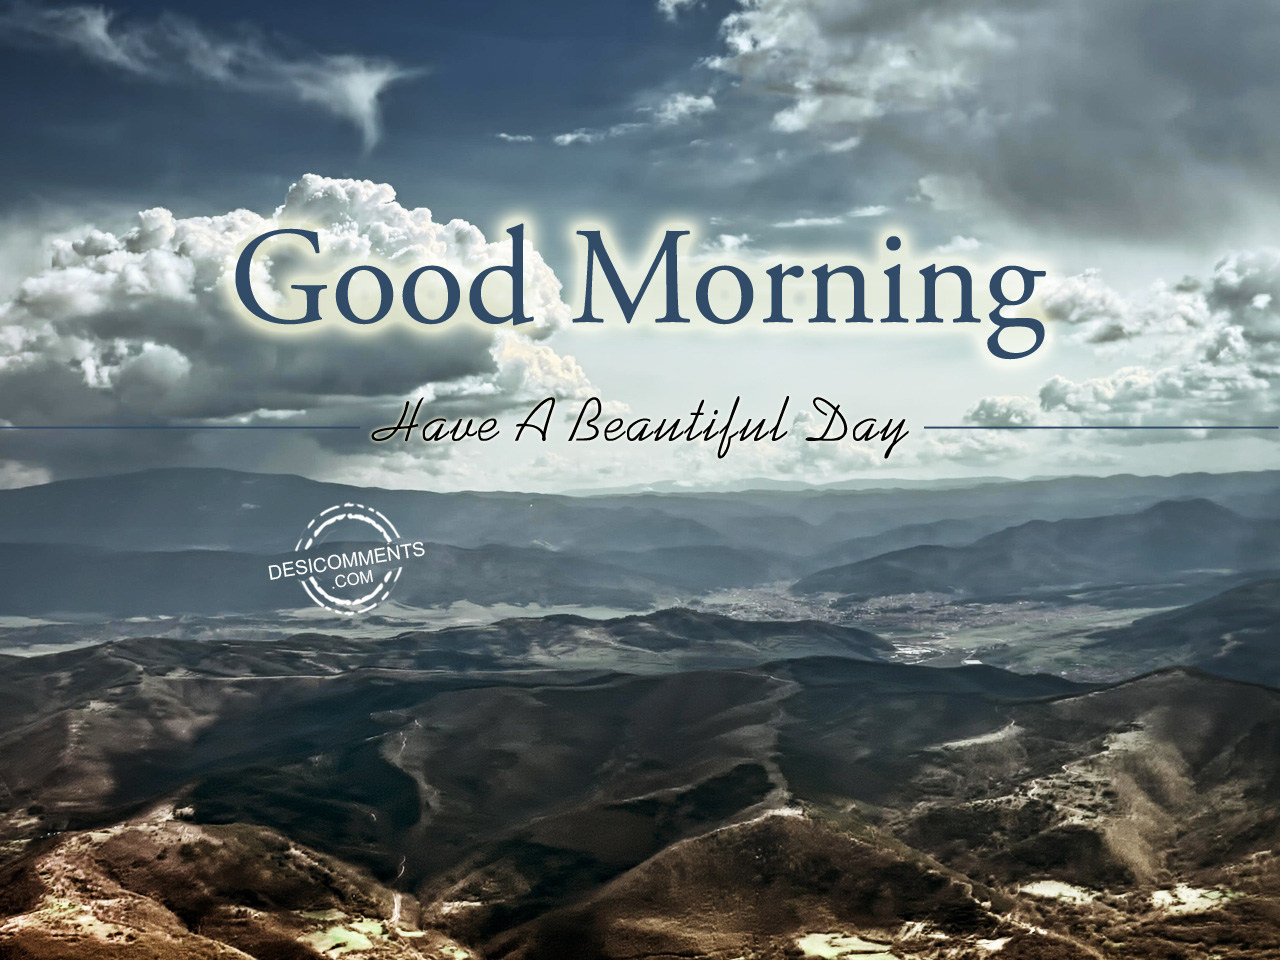 Good Morning Beautiful Have A Good Day : Have a beautiful day good morning desicomments